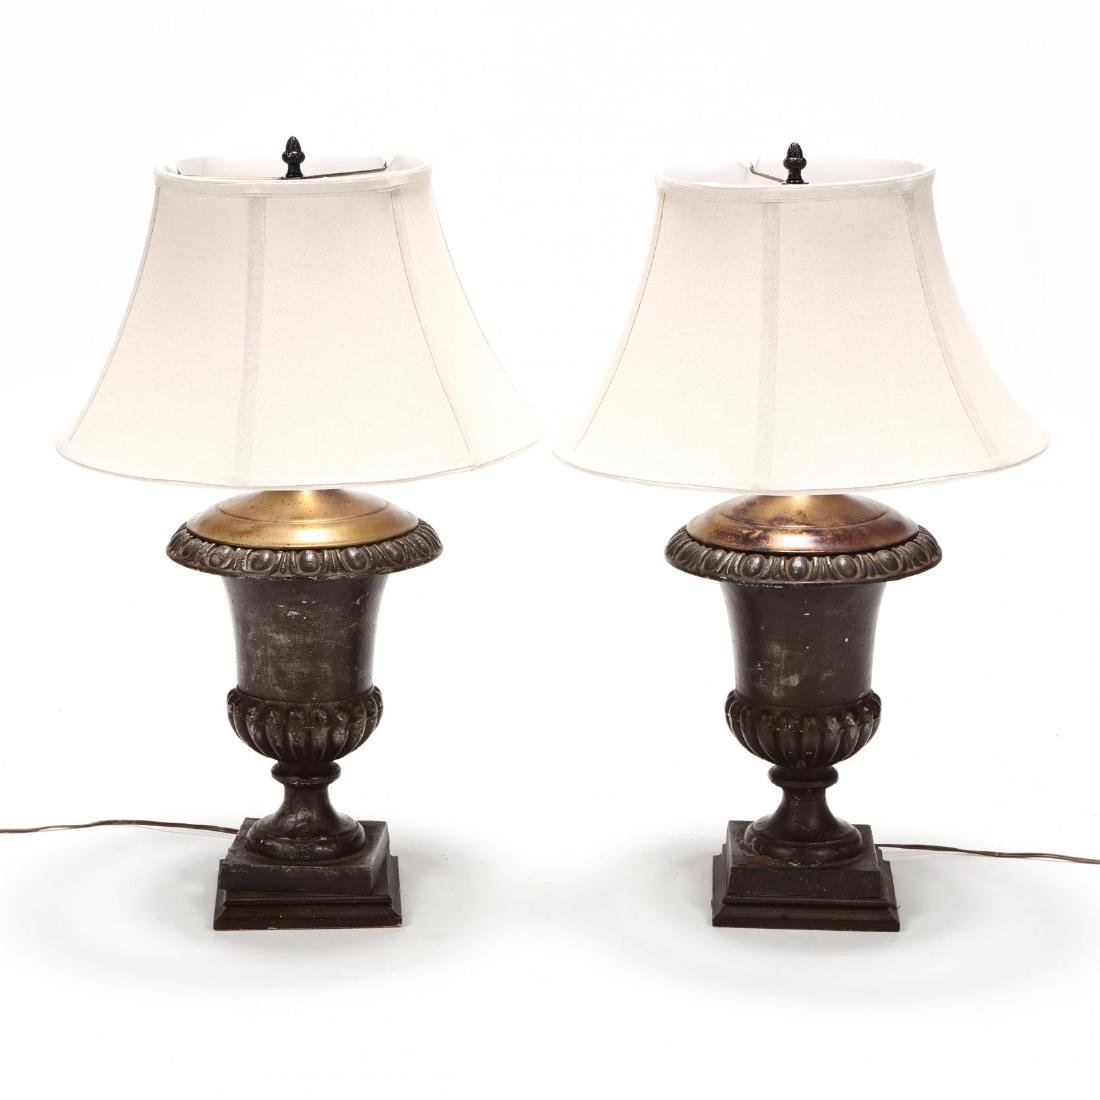 Pair of Iron Urn Form Table Lamps